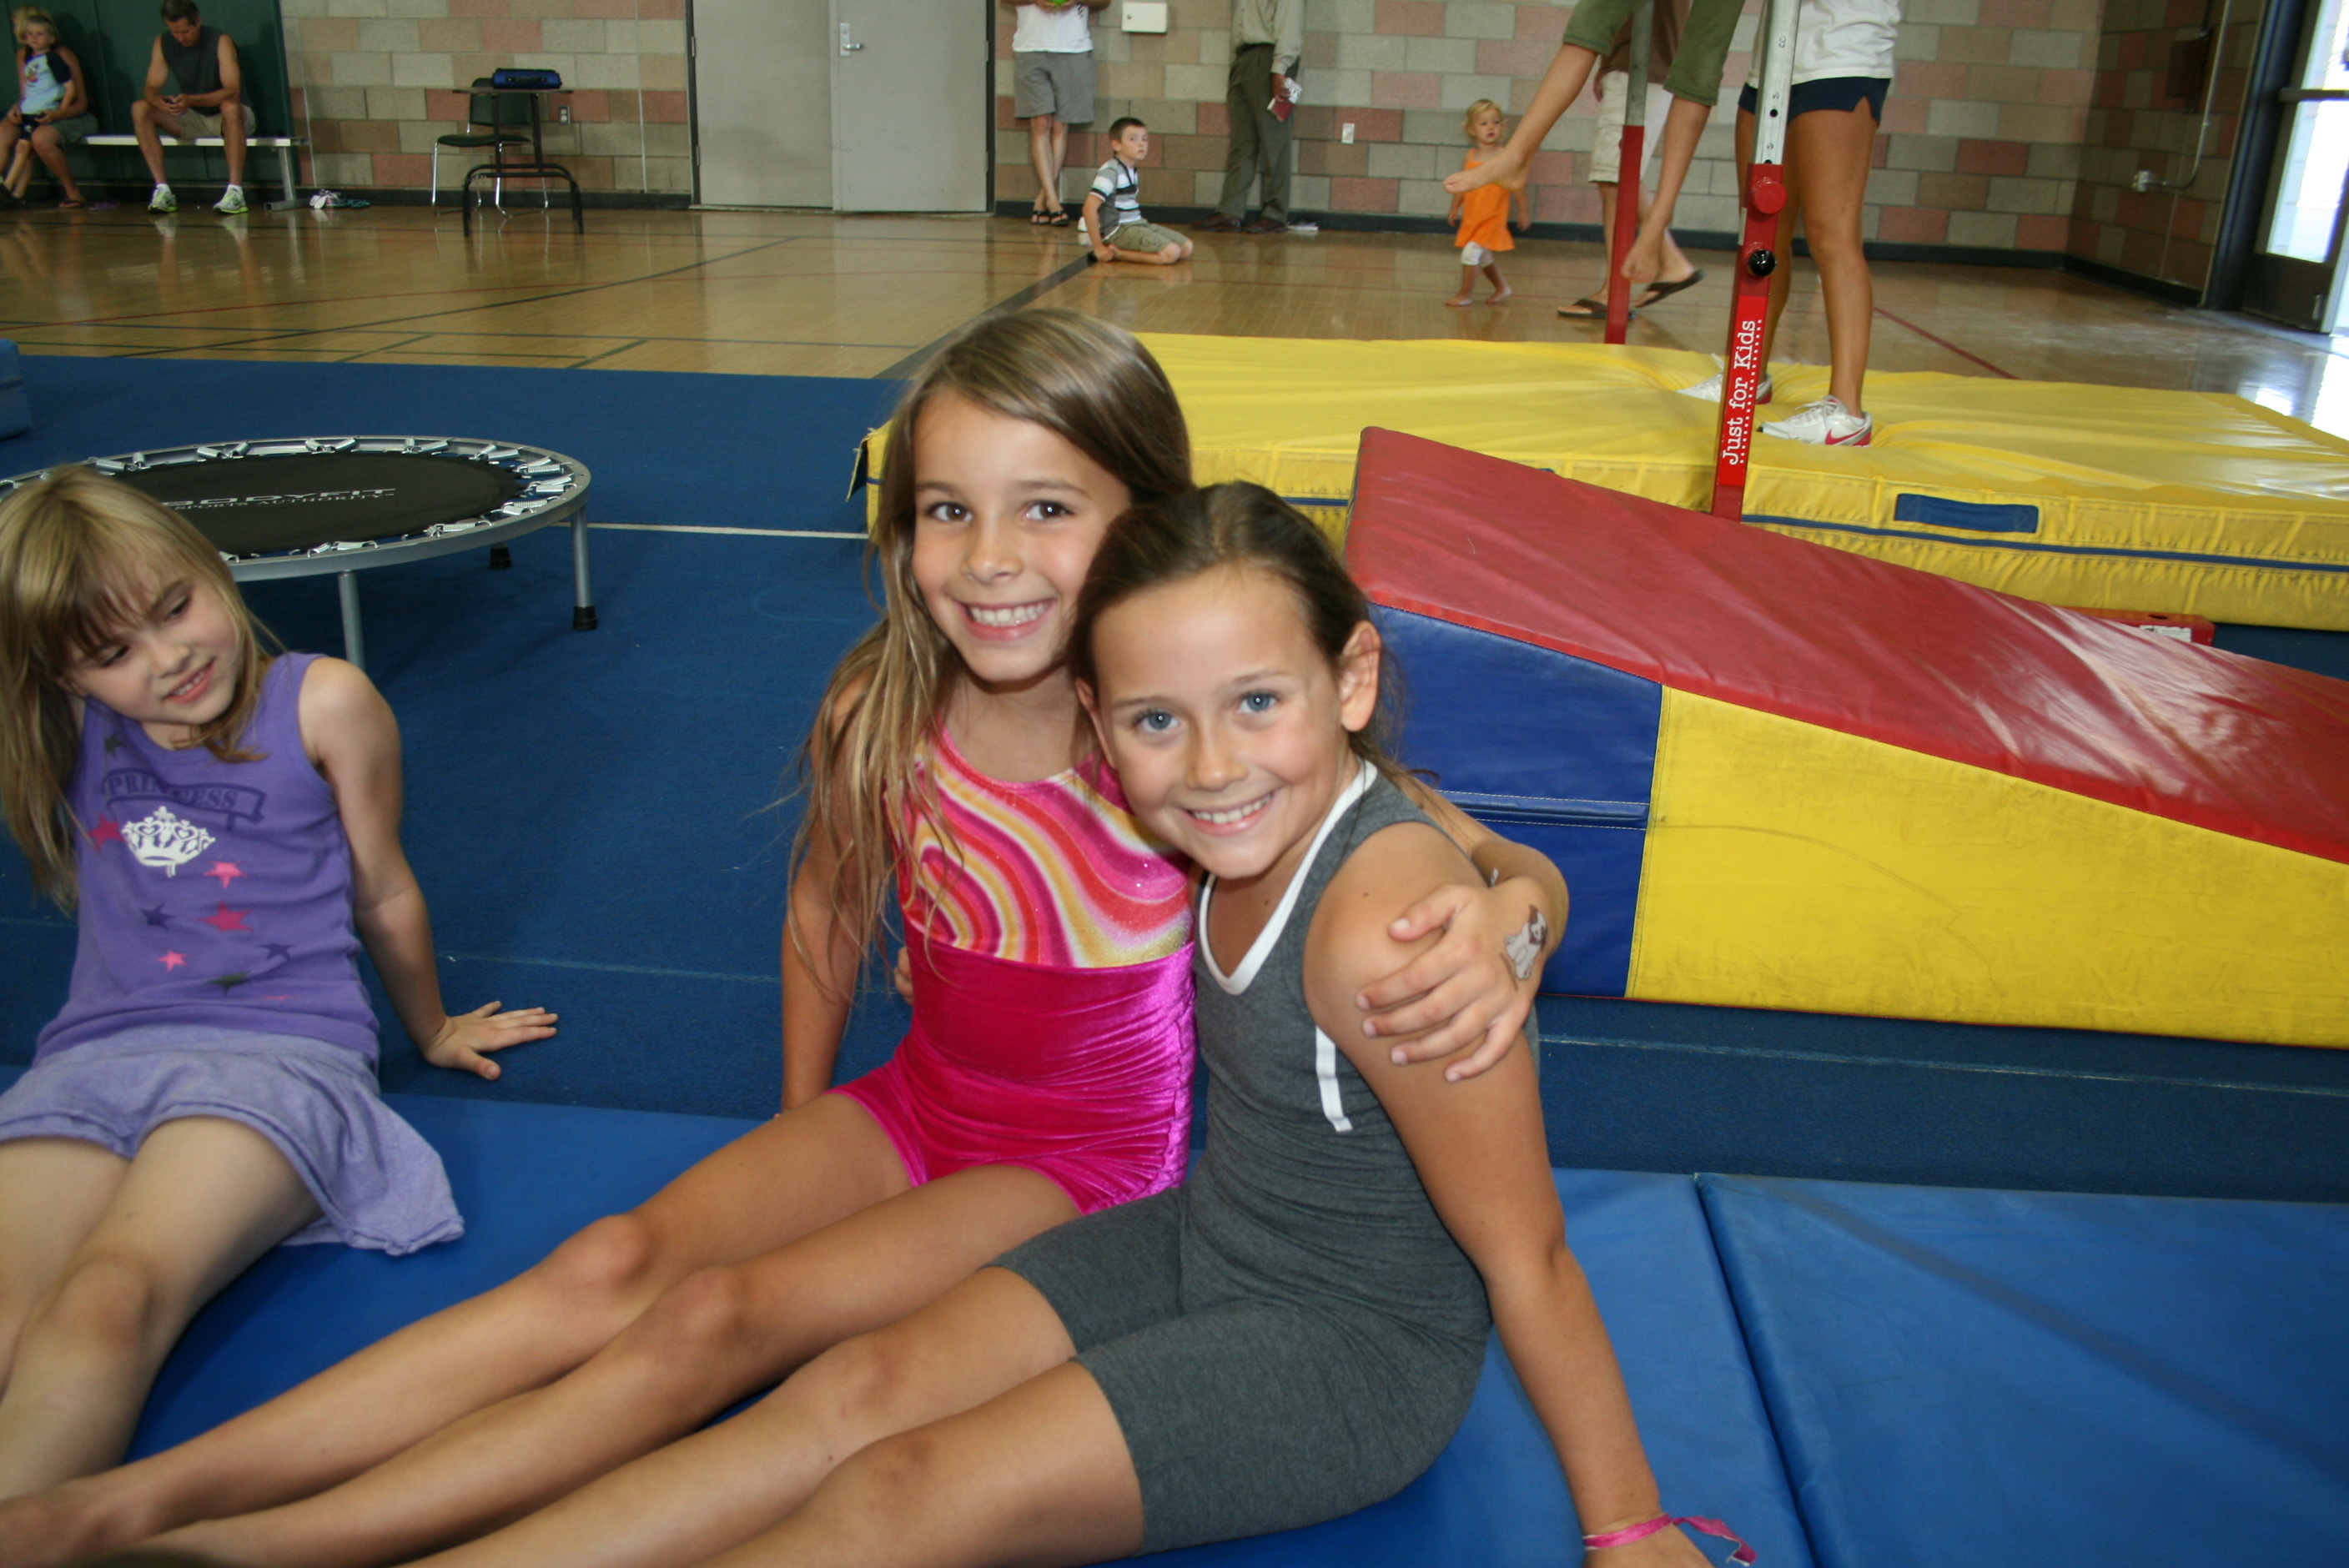 Scripps Ranch Gymnastics Tumbling